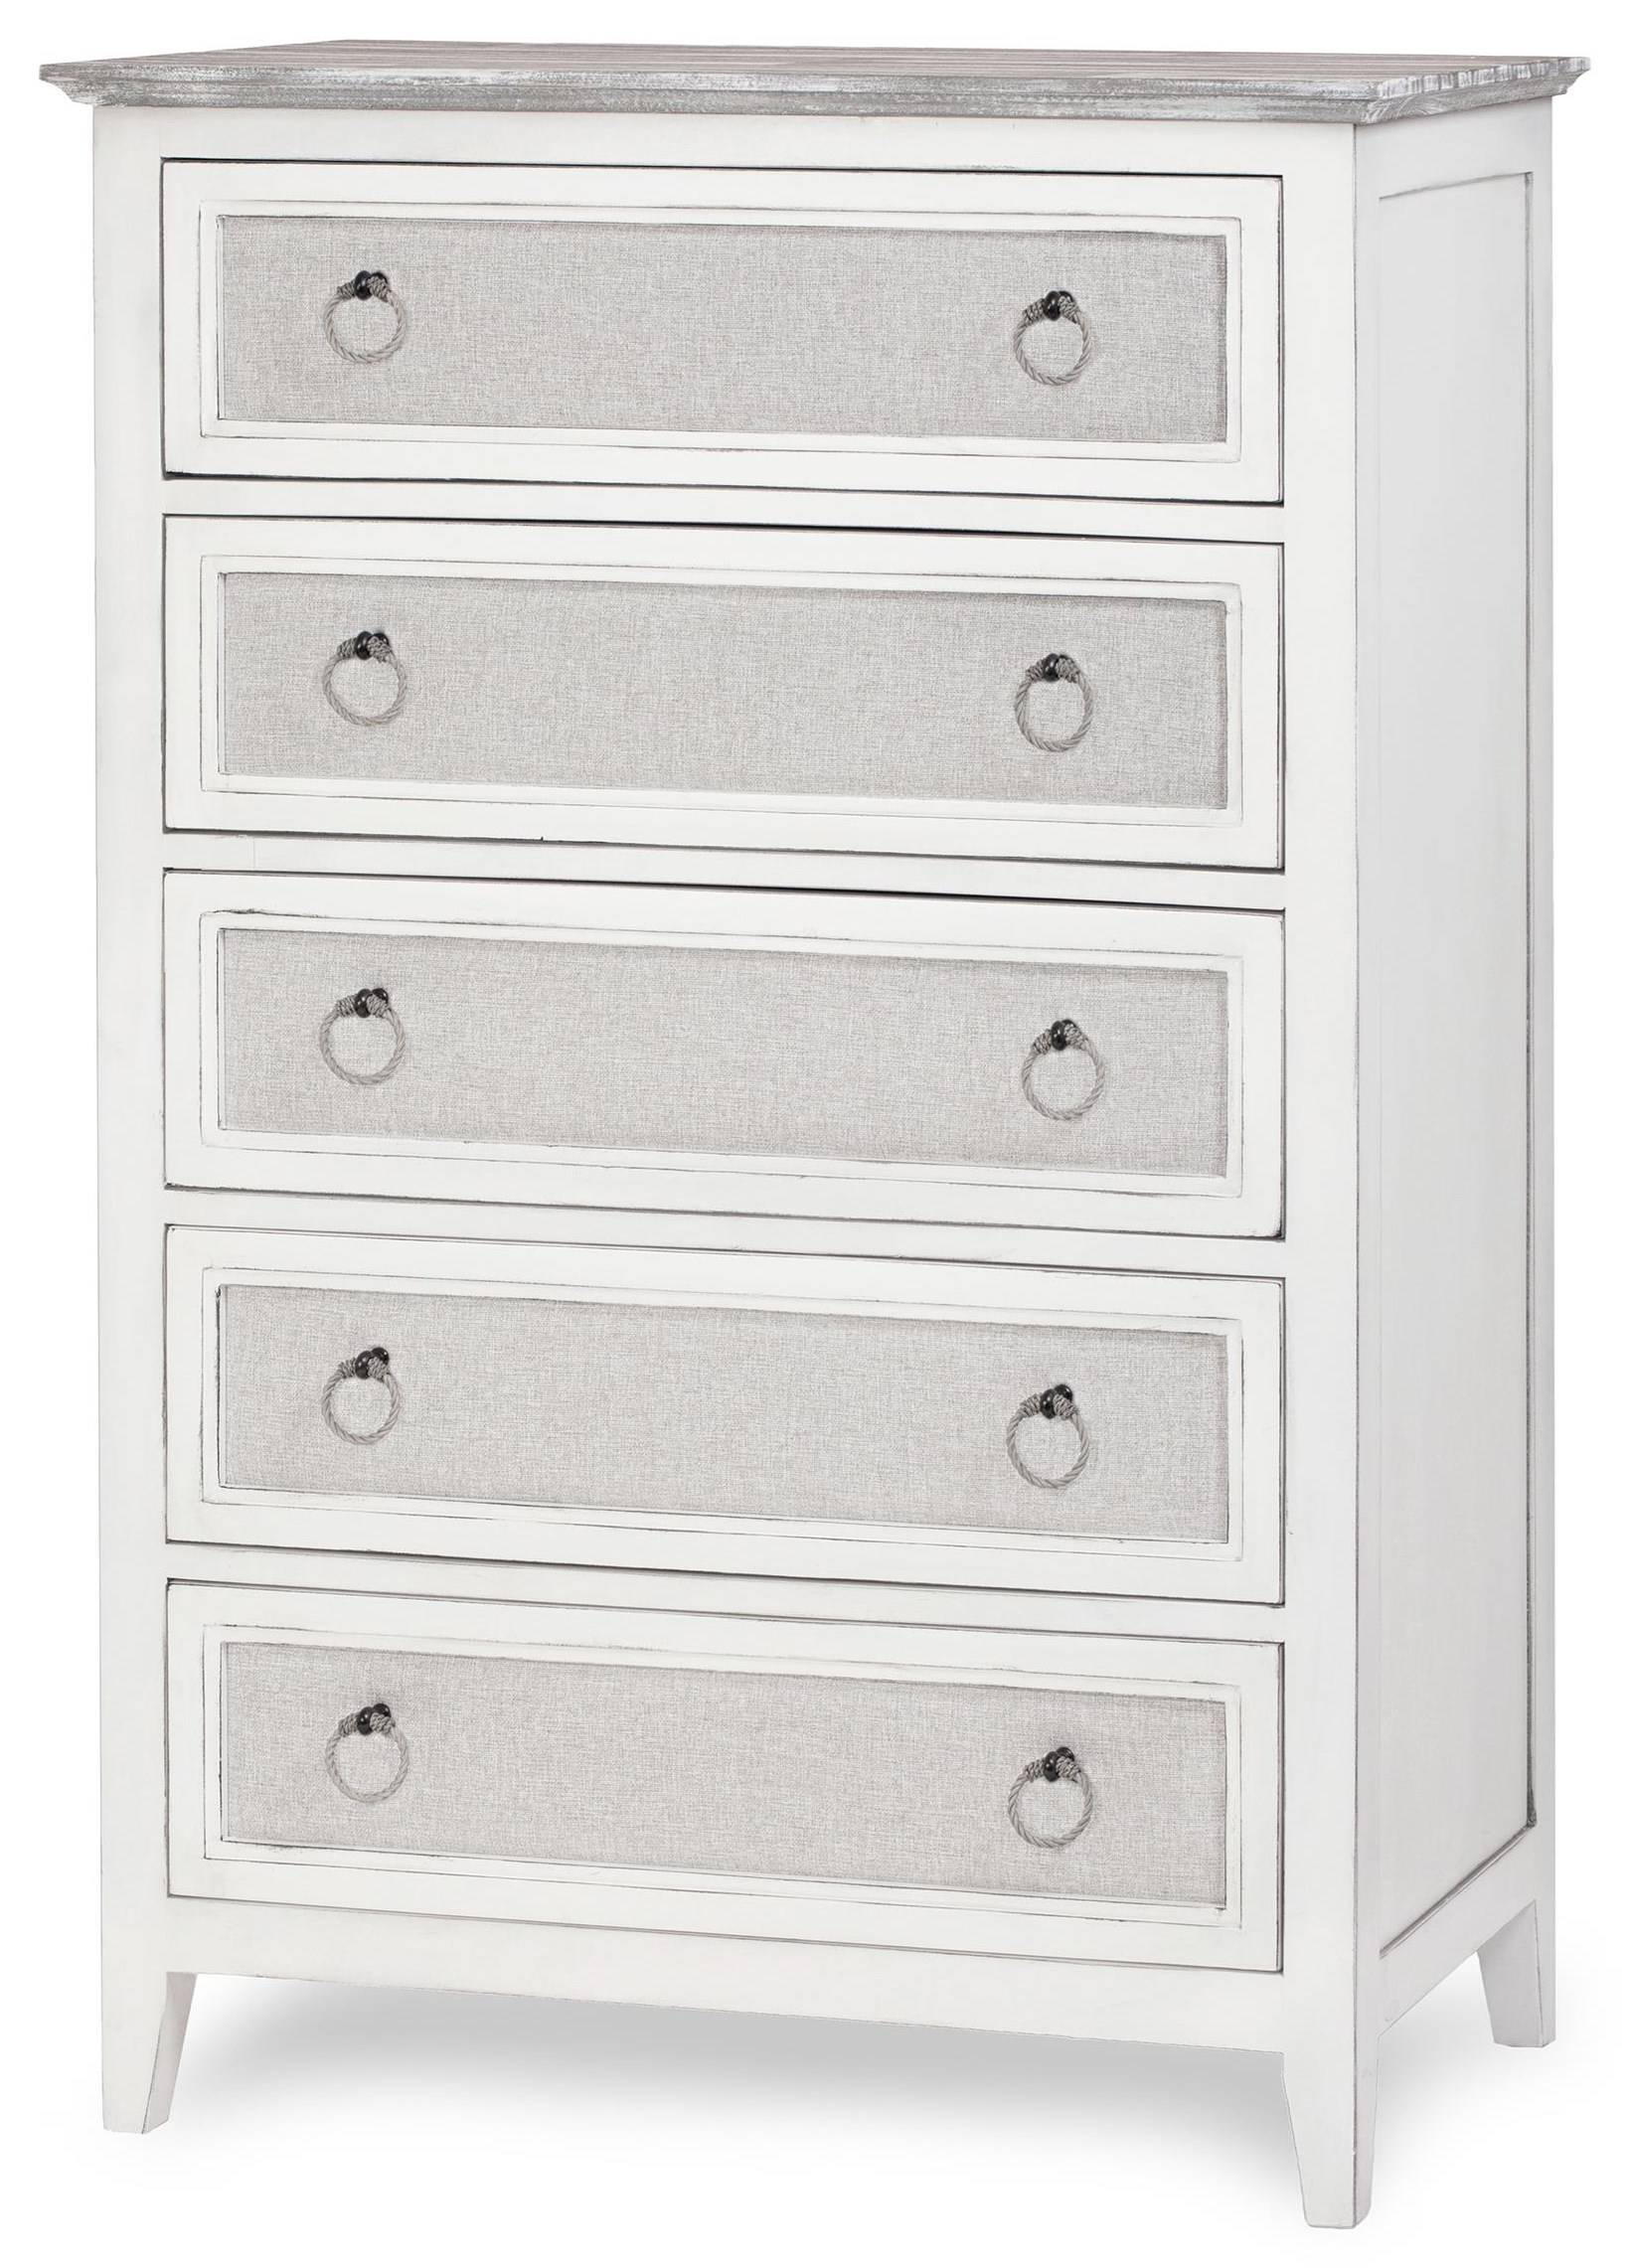 Captiva Island five drawer chest by Sea Winds Trading Company at Johnny Janosik